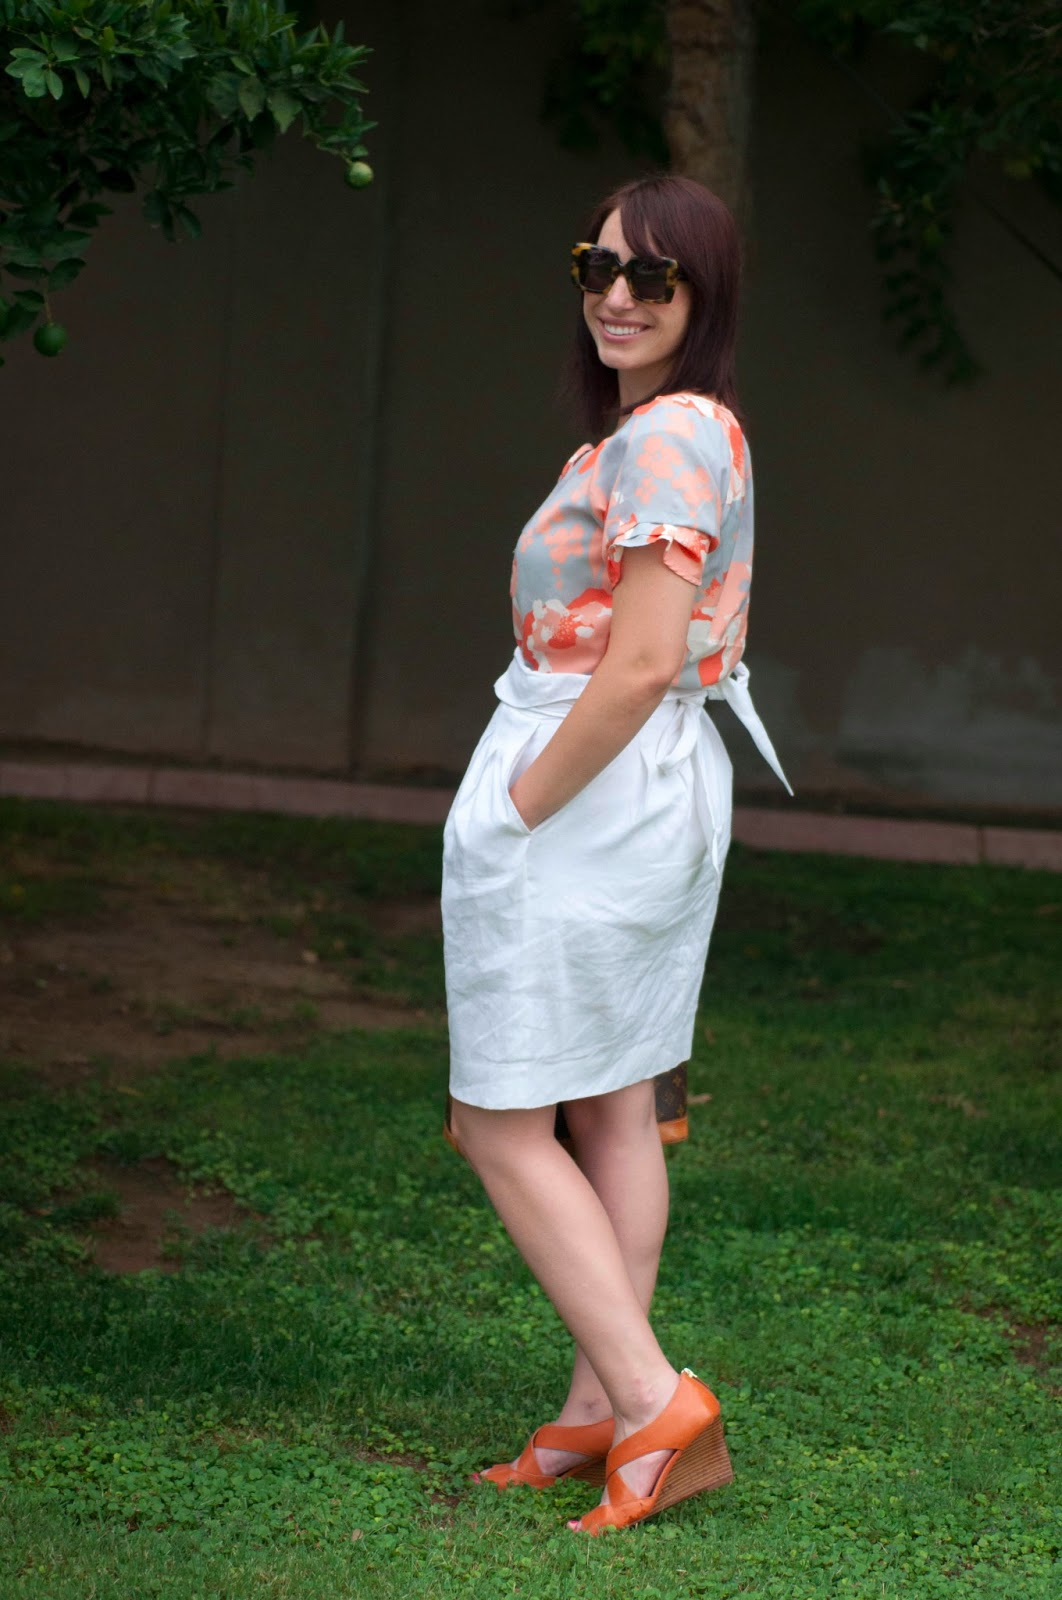 bcbg white skirt, karen walker sunglasses, karen walker, silk blouse, tortoise sunglasses, bow skirt, ootd, style blog